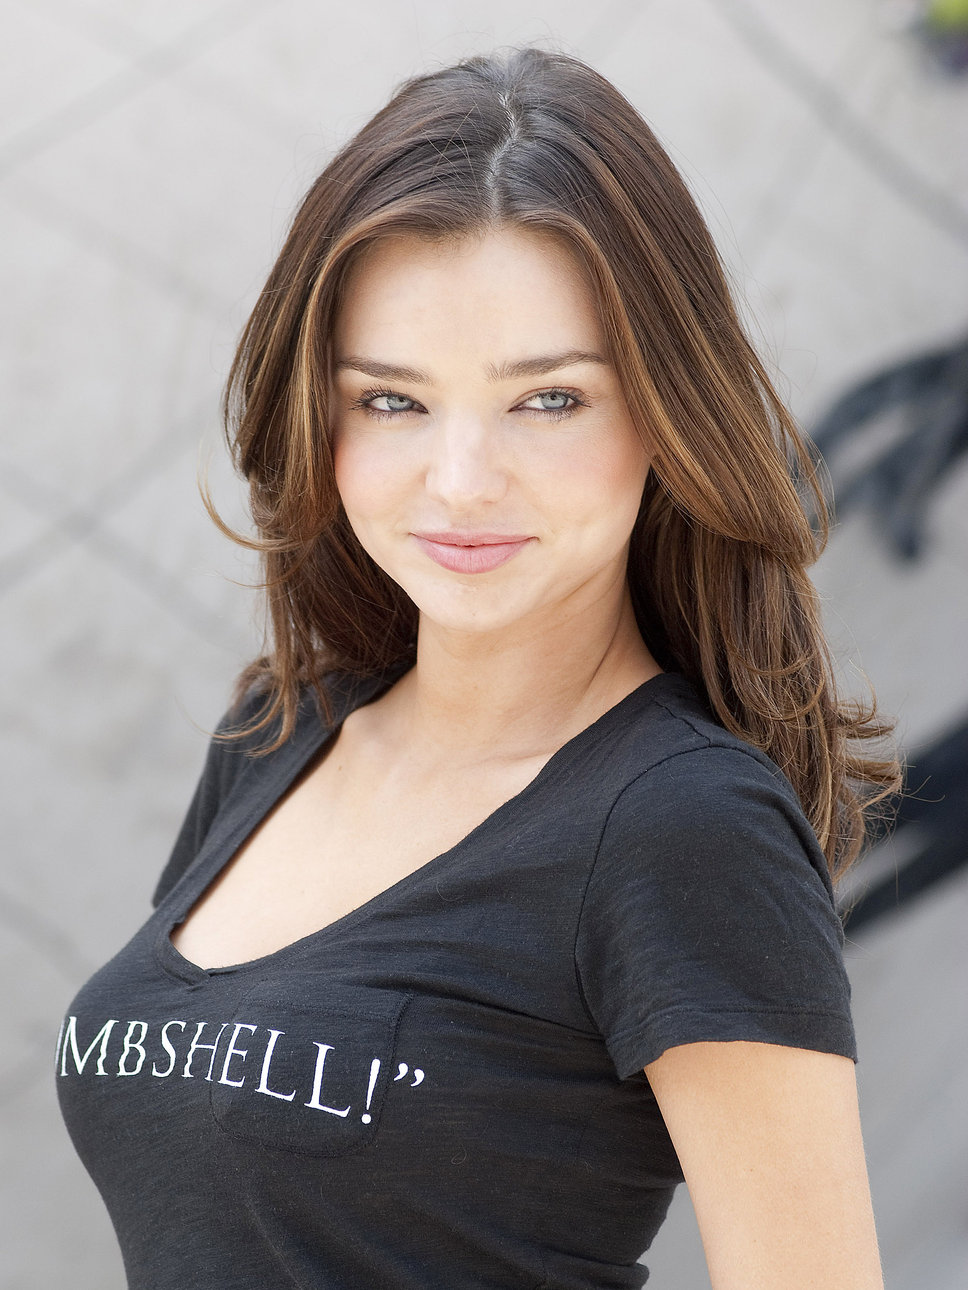 Miranda Kerr S Best Style Looks Ever: Miranda Kerr GQ Collections